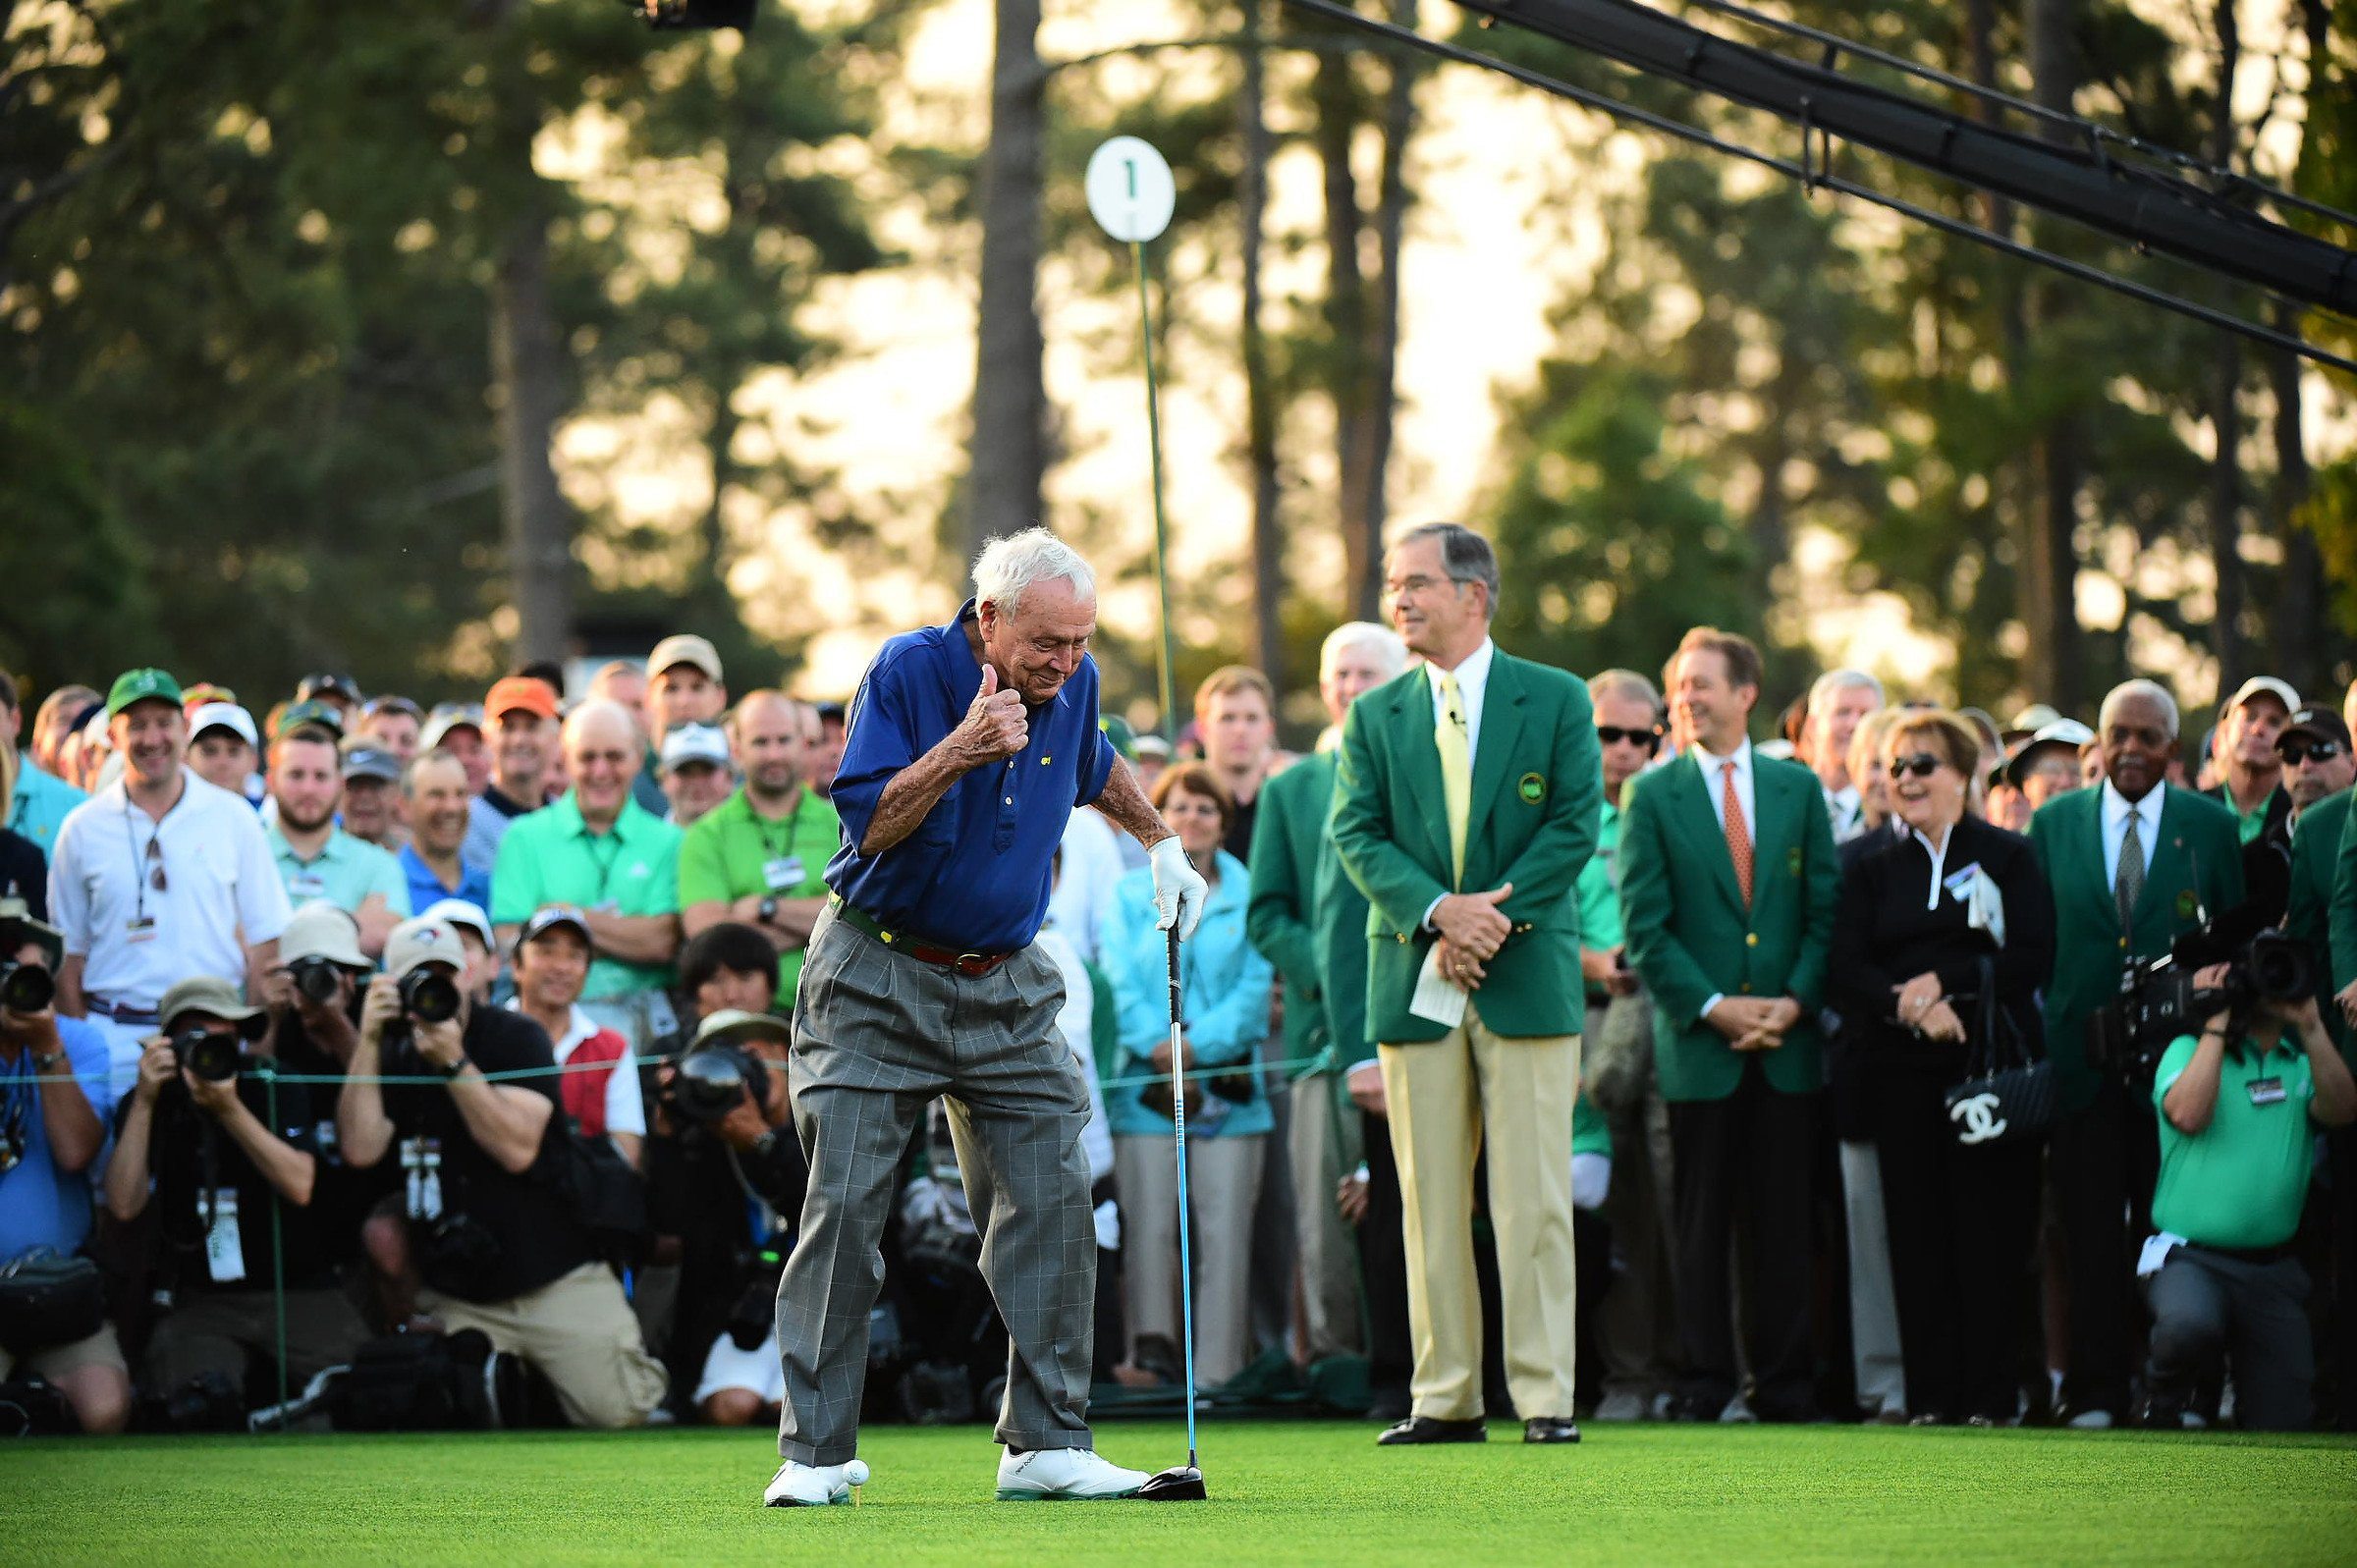 Arnold Palmer gives fans the thumbs-up on the first tee at Augusta Nationa.